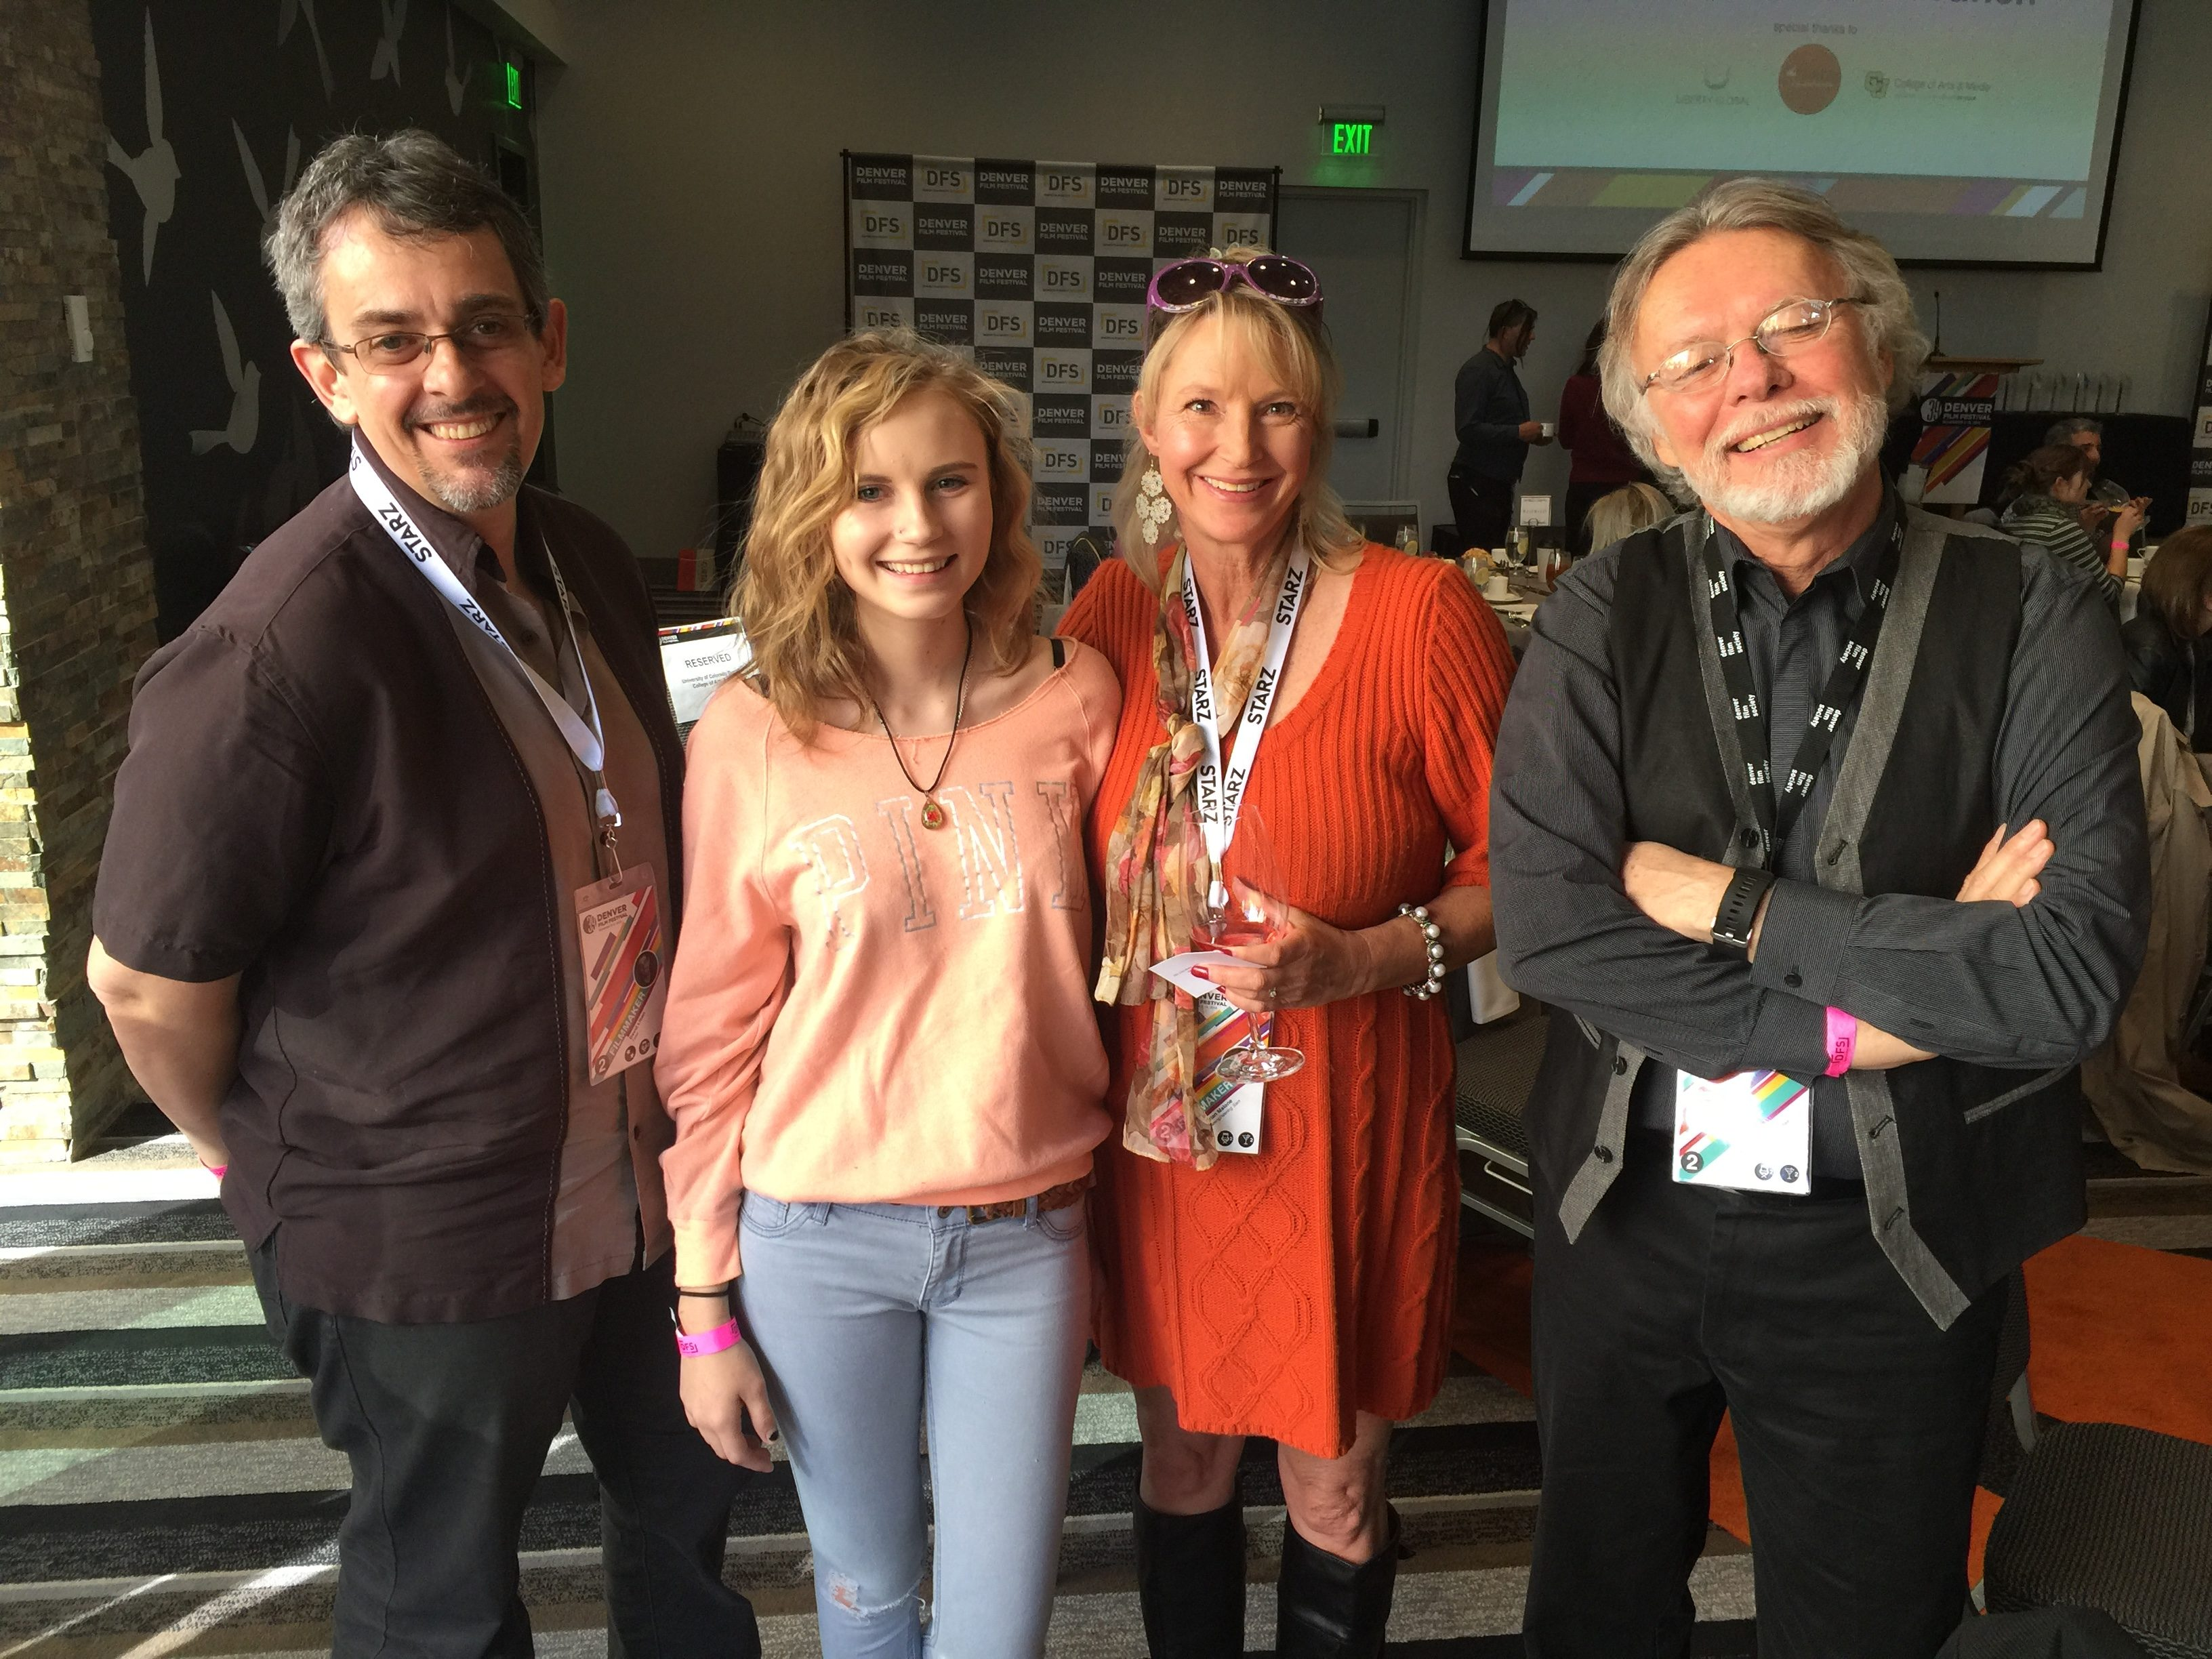 We didn't know it at the time, but Cindi Malone (2nd from right) as a Producer was there to accept an award from the Denver Film Fesitval on behalf of her husband Brian Malone for Reengineering SAM (2016). We were glad to meet Caitlin Malone too (second from left).